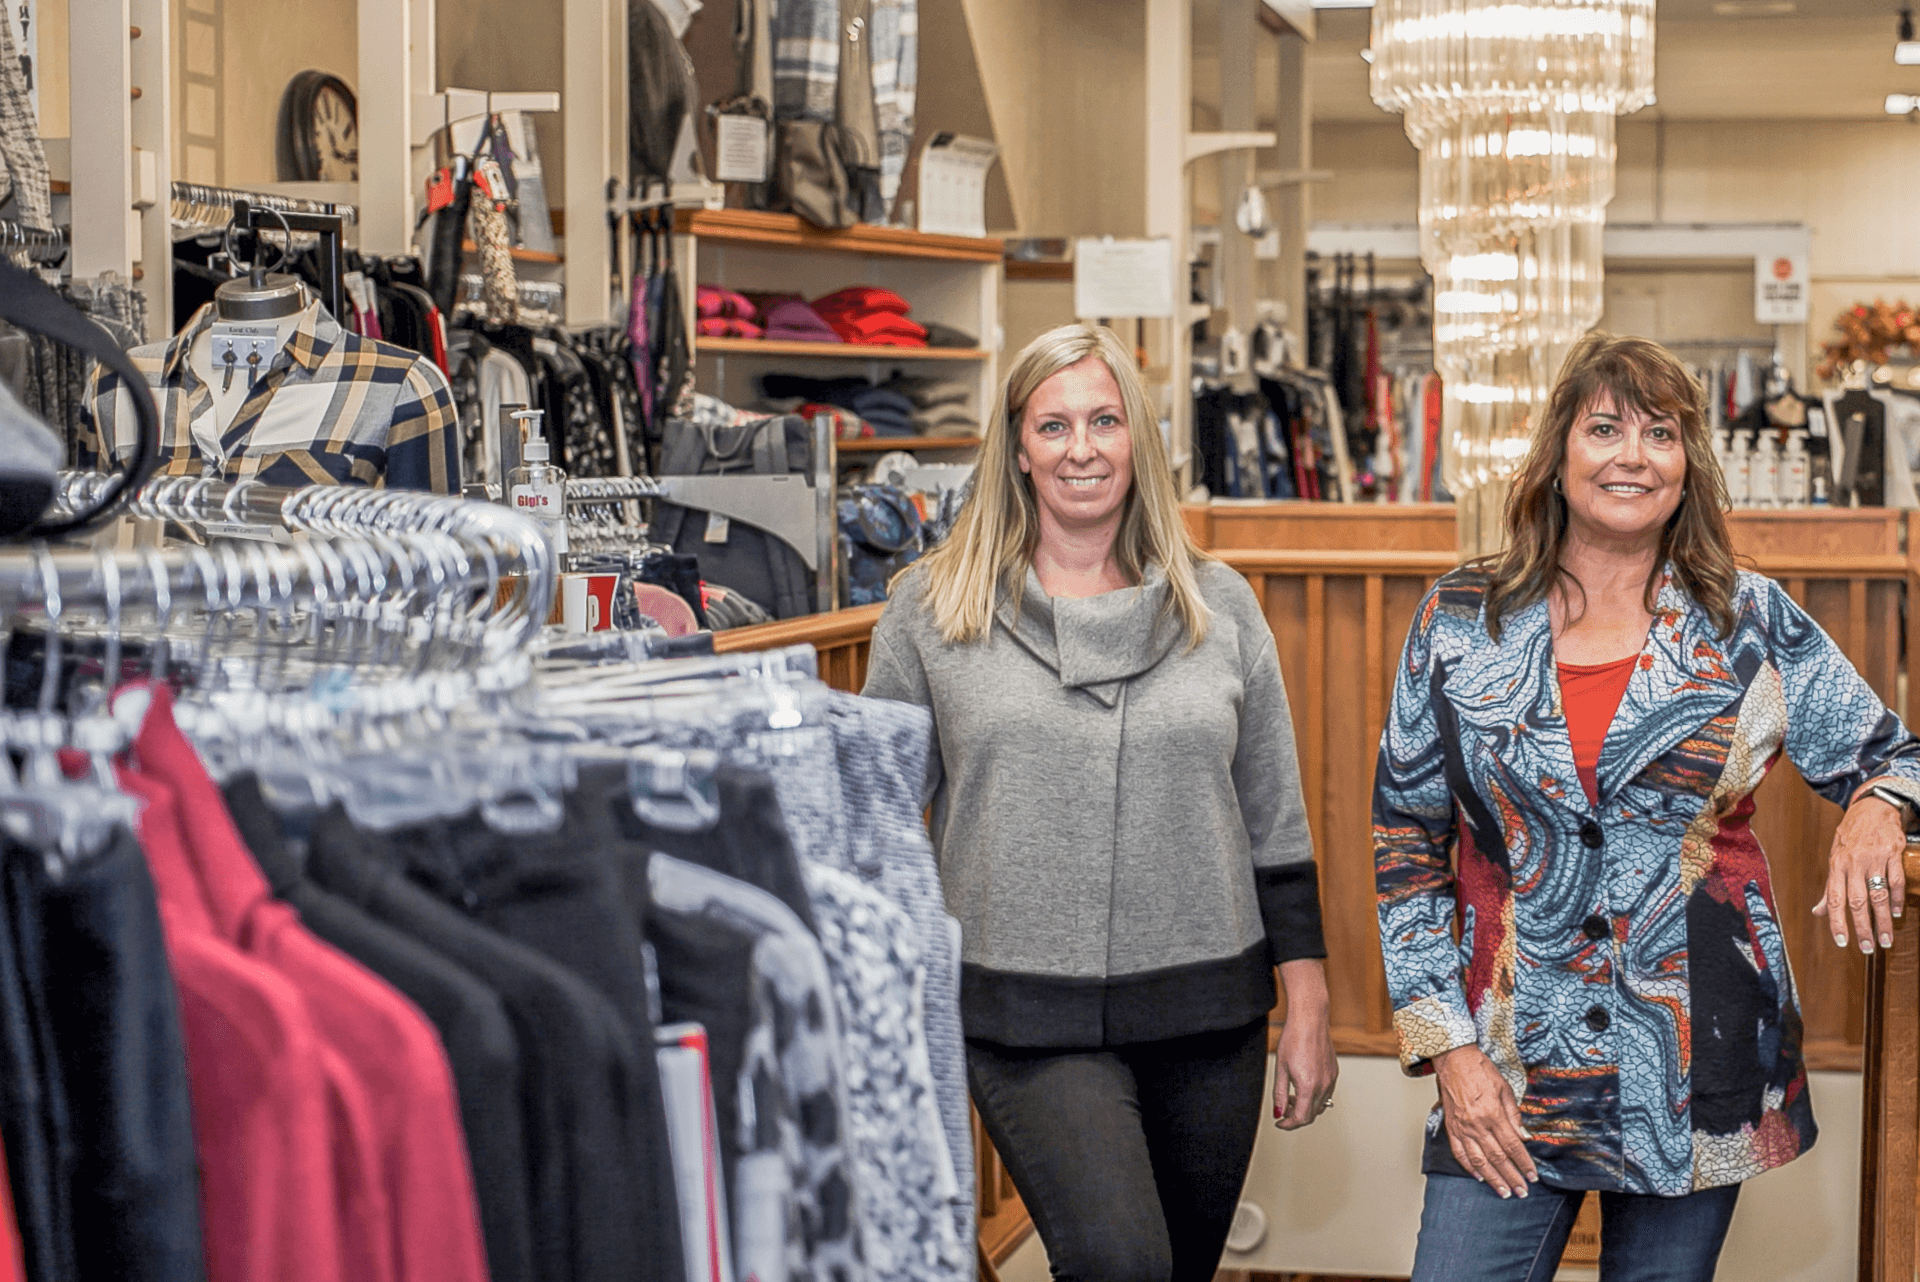 owner and employee standing in clothing store